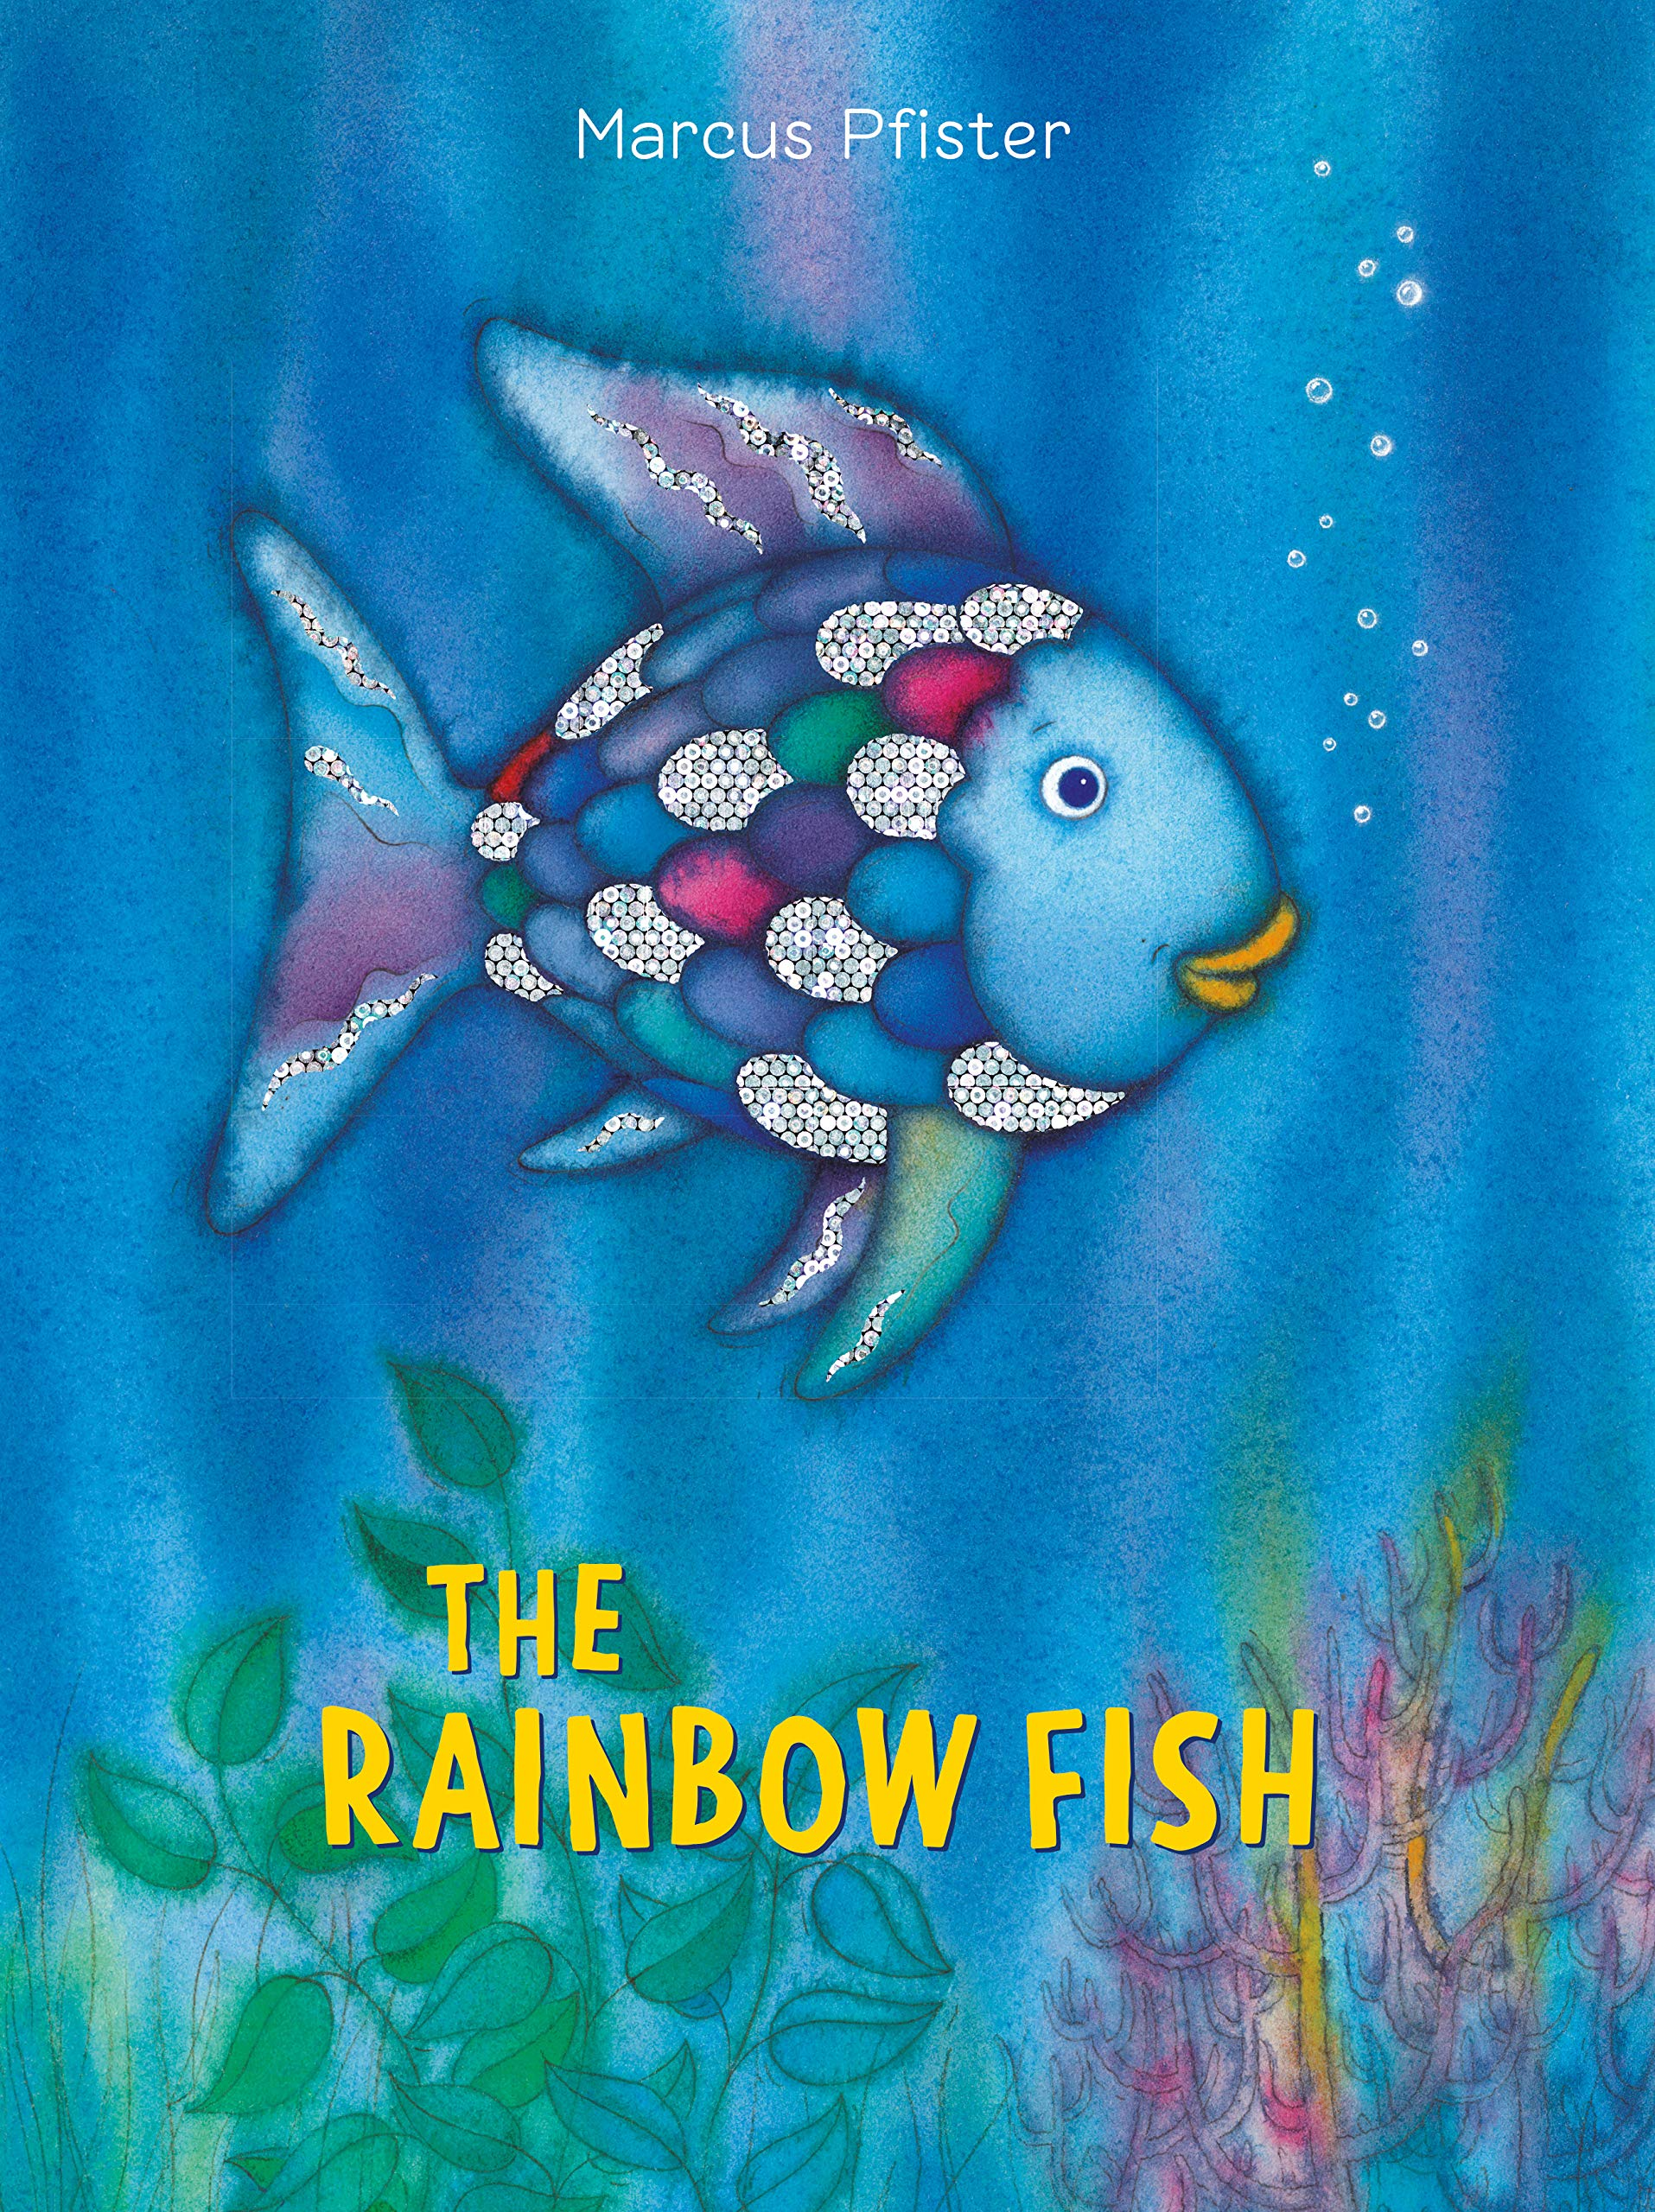 Jacket cover for The Rainbow Fish, writen and illustrated by Marcus Pfister